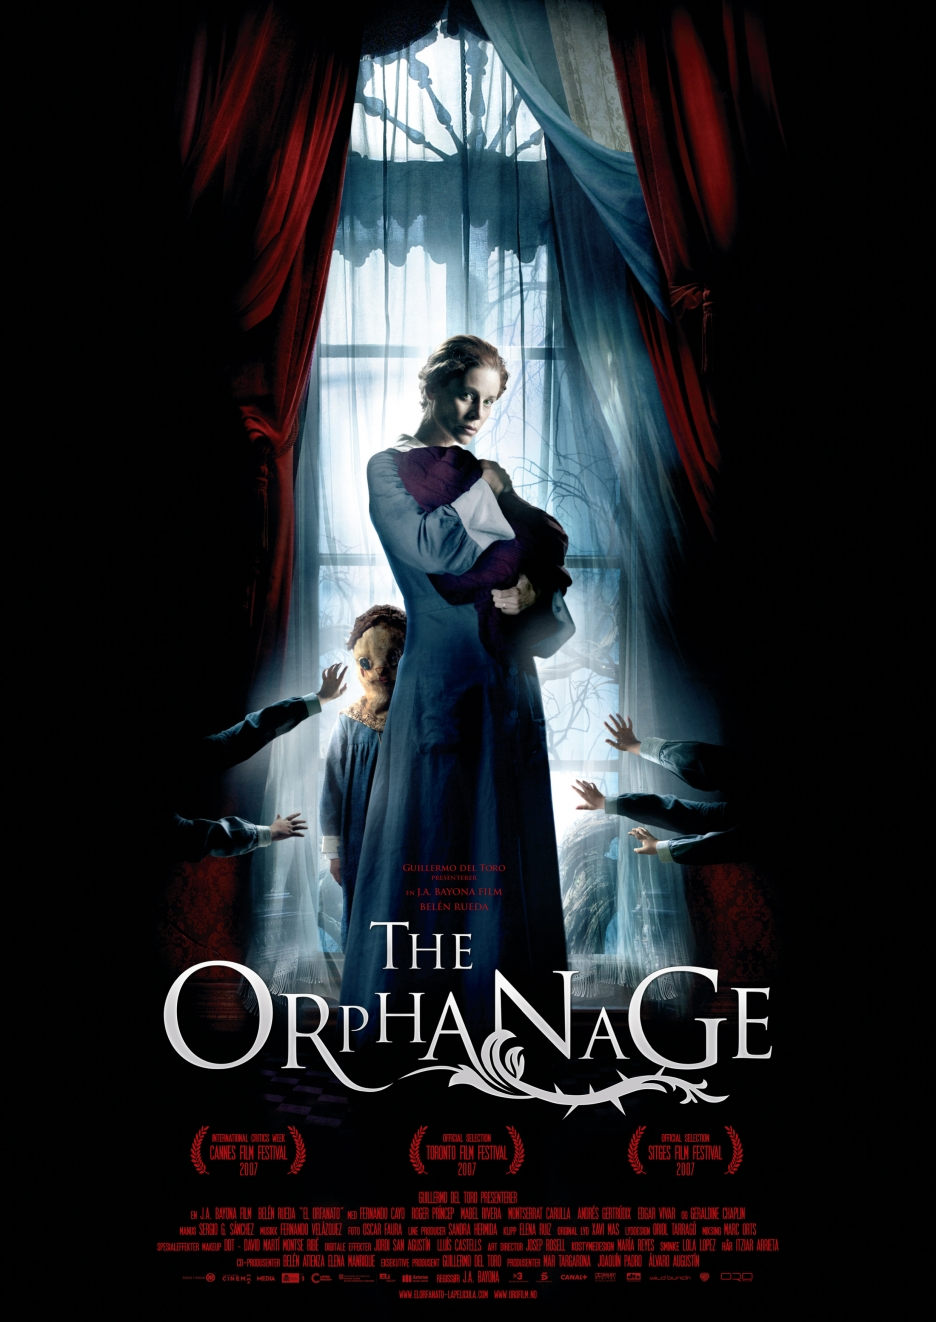 Promising Ghost Story Gets Orphaned in The Orphanage (2007)